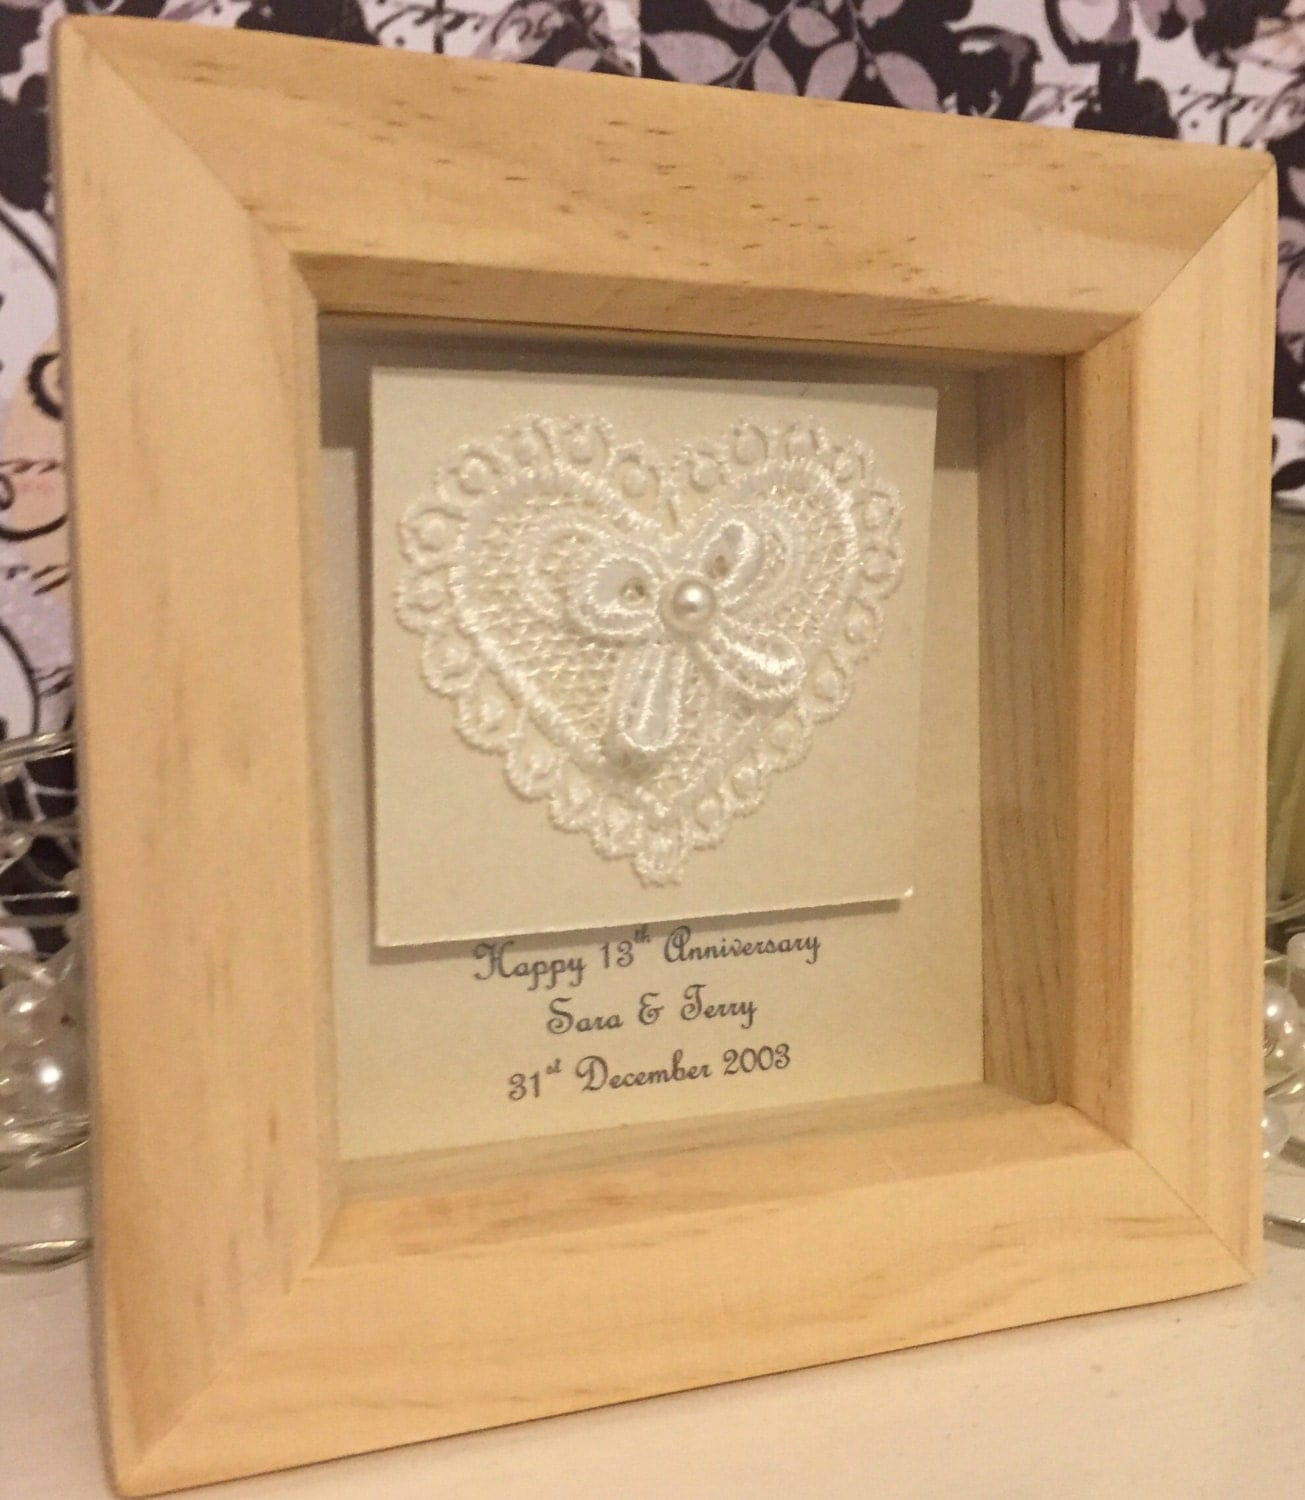 Gift For 13th Wedding Anniversary: 13th Wedding Anniversary Gift 13th Anniversary Present Lace